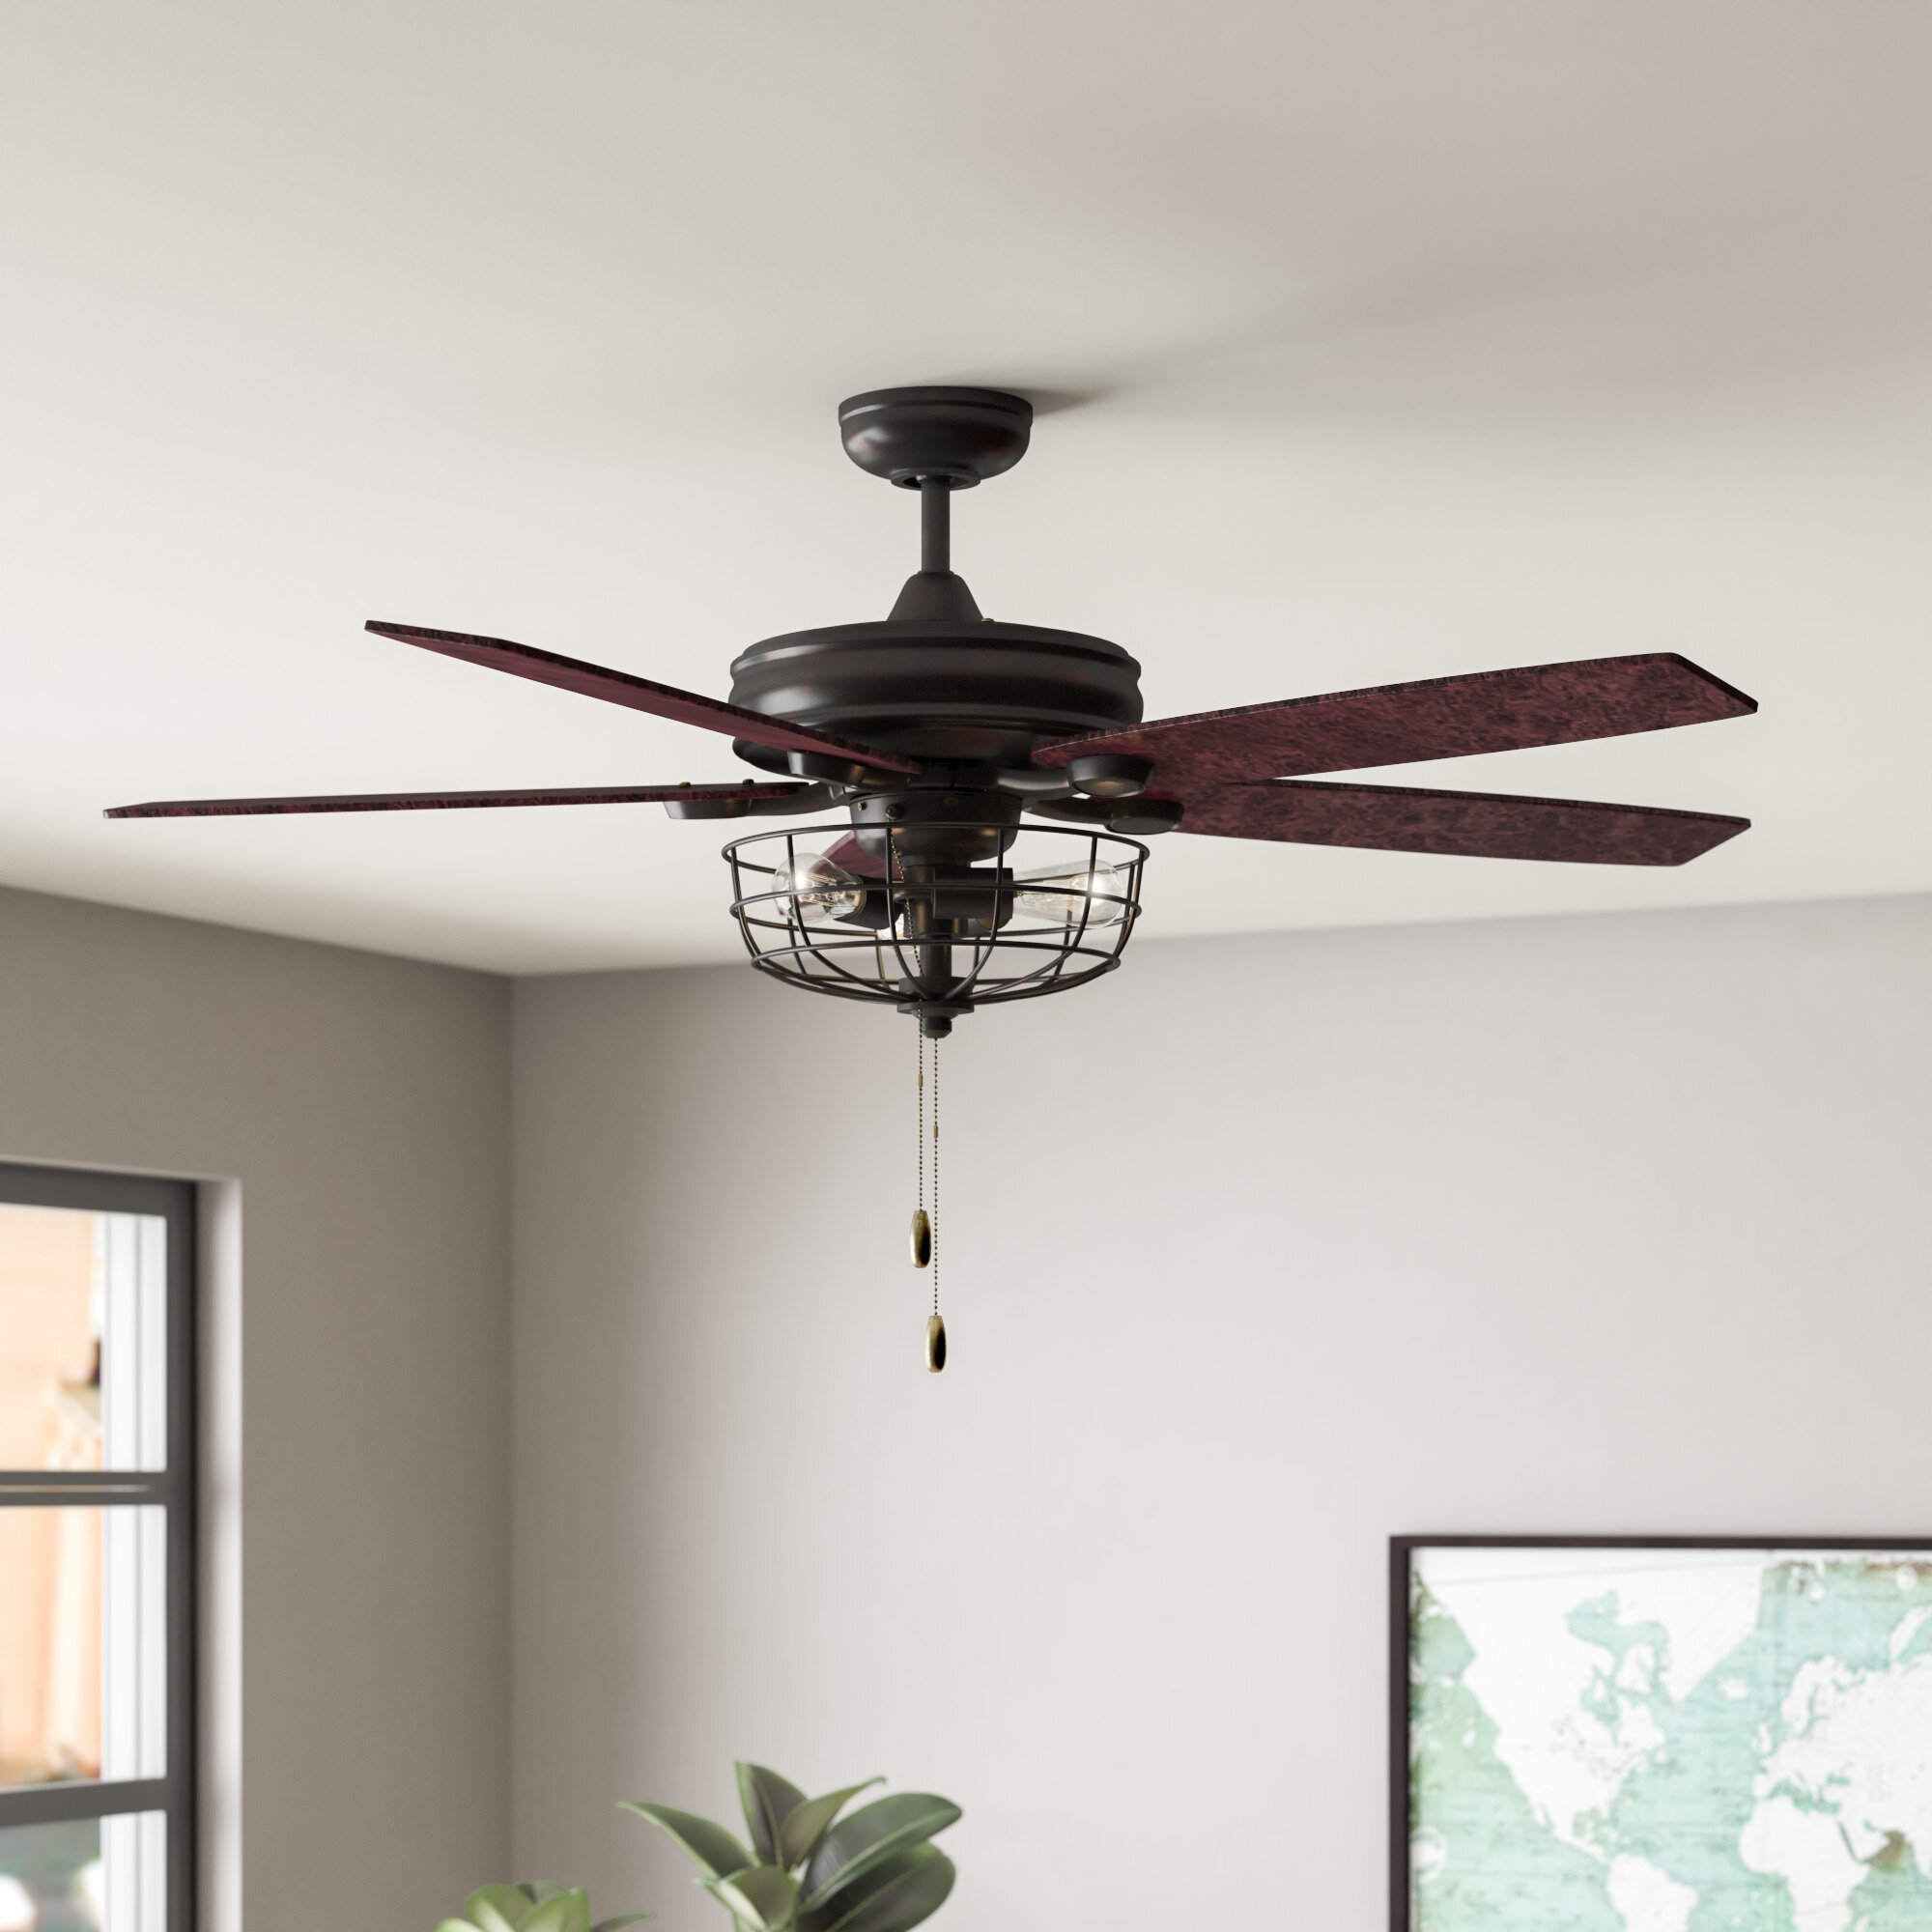 Trent Austin Design 52 Glenpool 5 Blade Caged Ceiling Fan With Pull Chain And Light Kit Included Reviews Wayfair